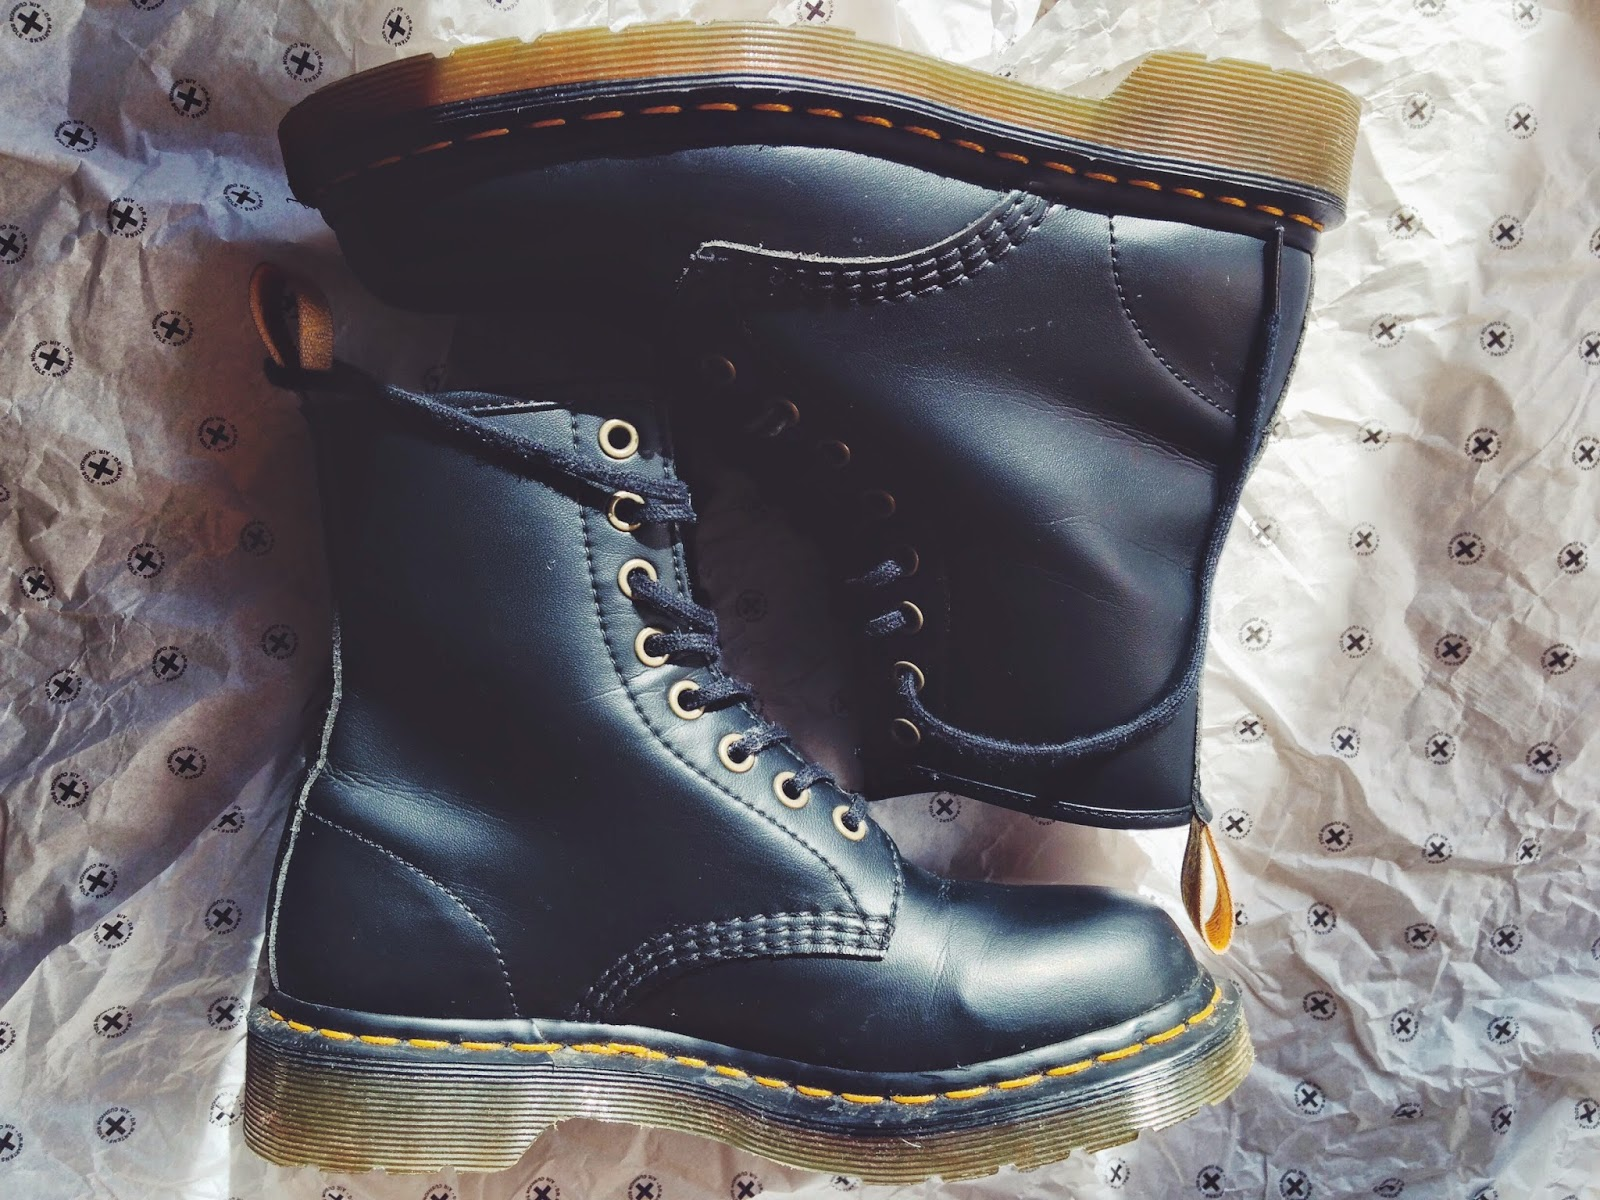 Conscious Vegan 1460 Curiously Review Dr Martens Boots zxpW6Yn